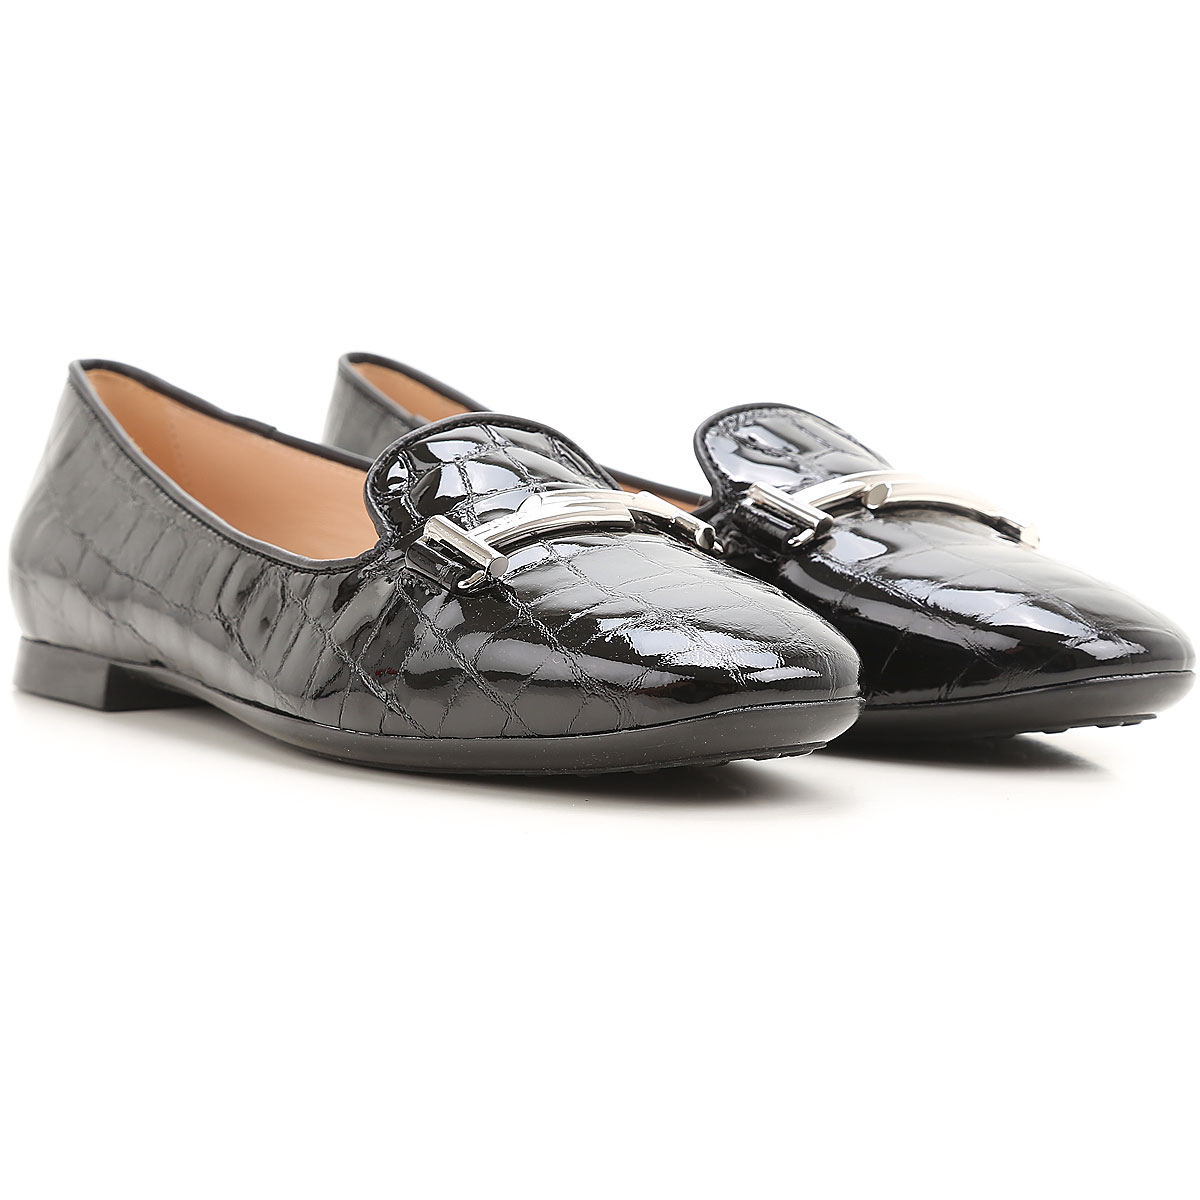 Image of Tods Ballet Flats Ballerina Shoes for Women On Sale, Black, Leather, 2017, 5.5 6 6.5 7